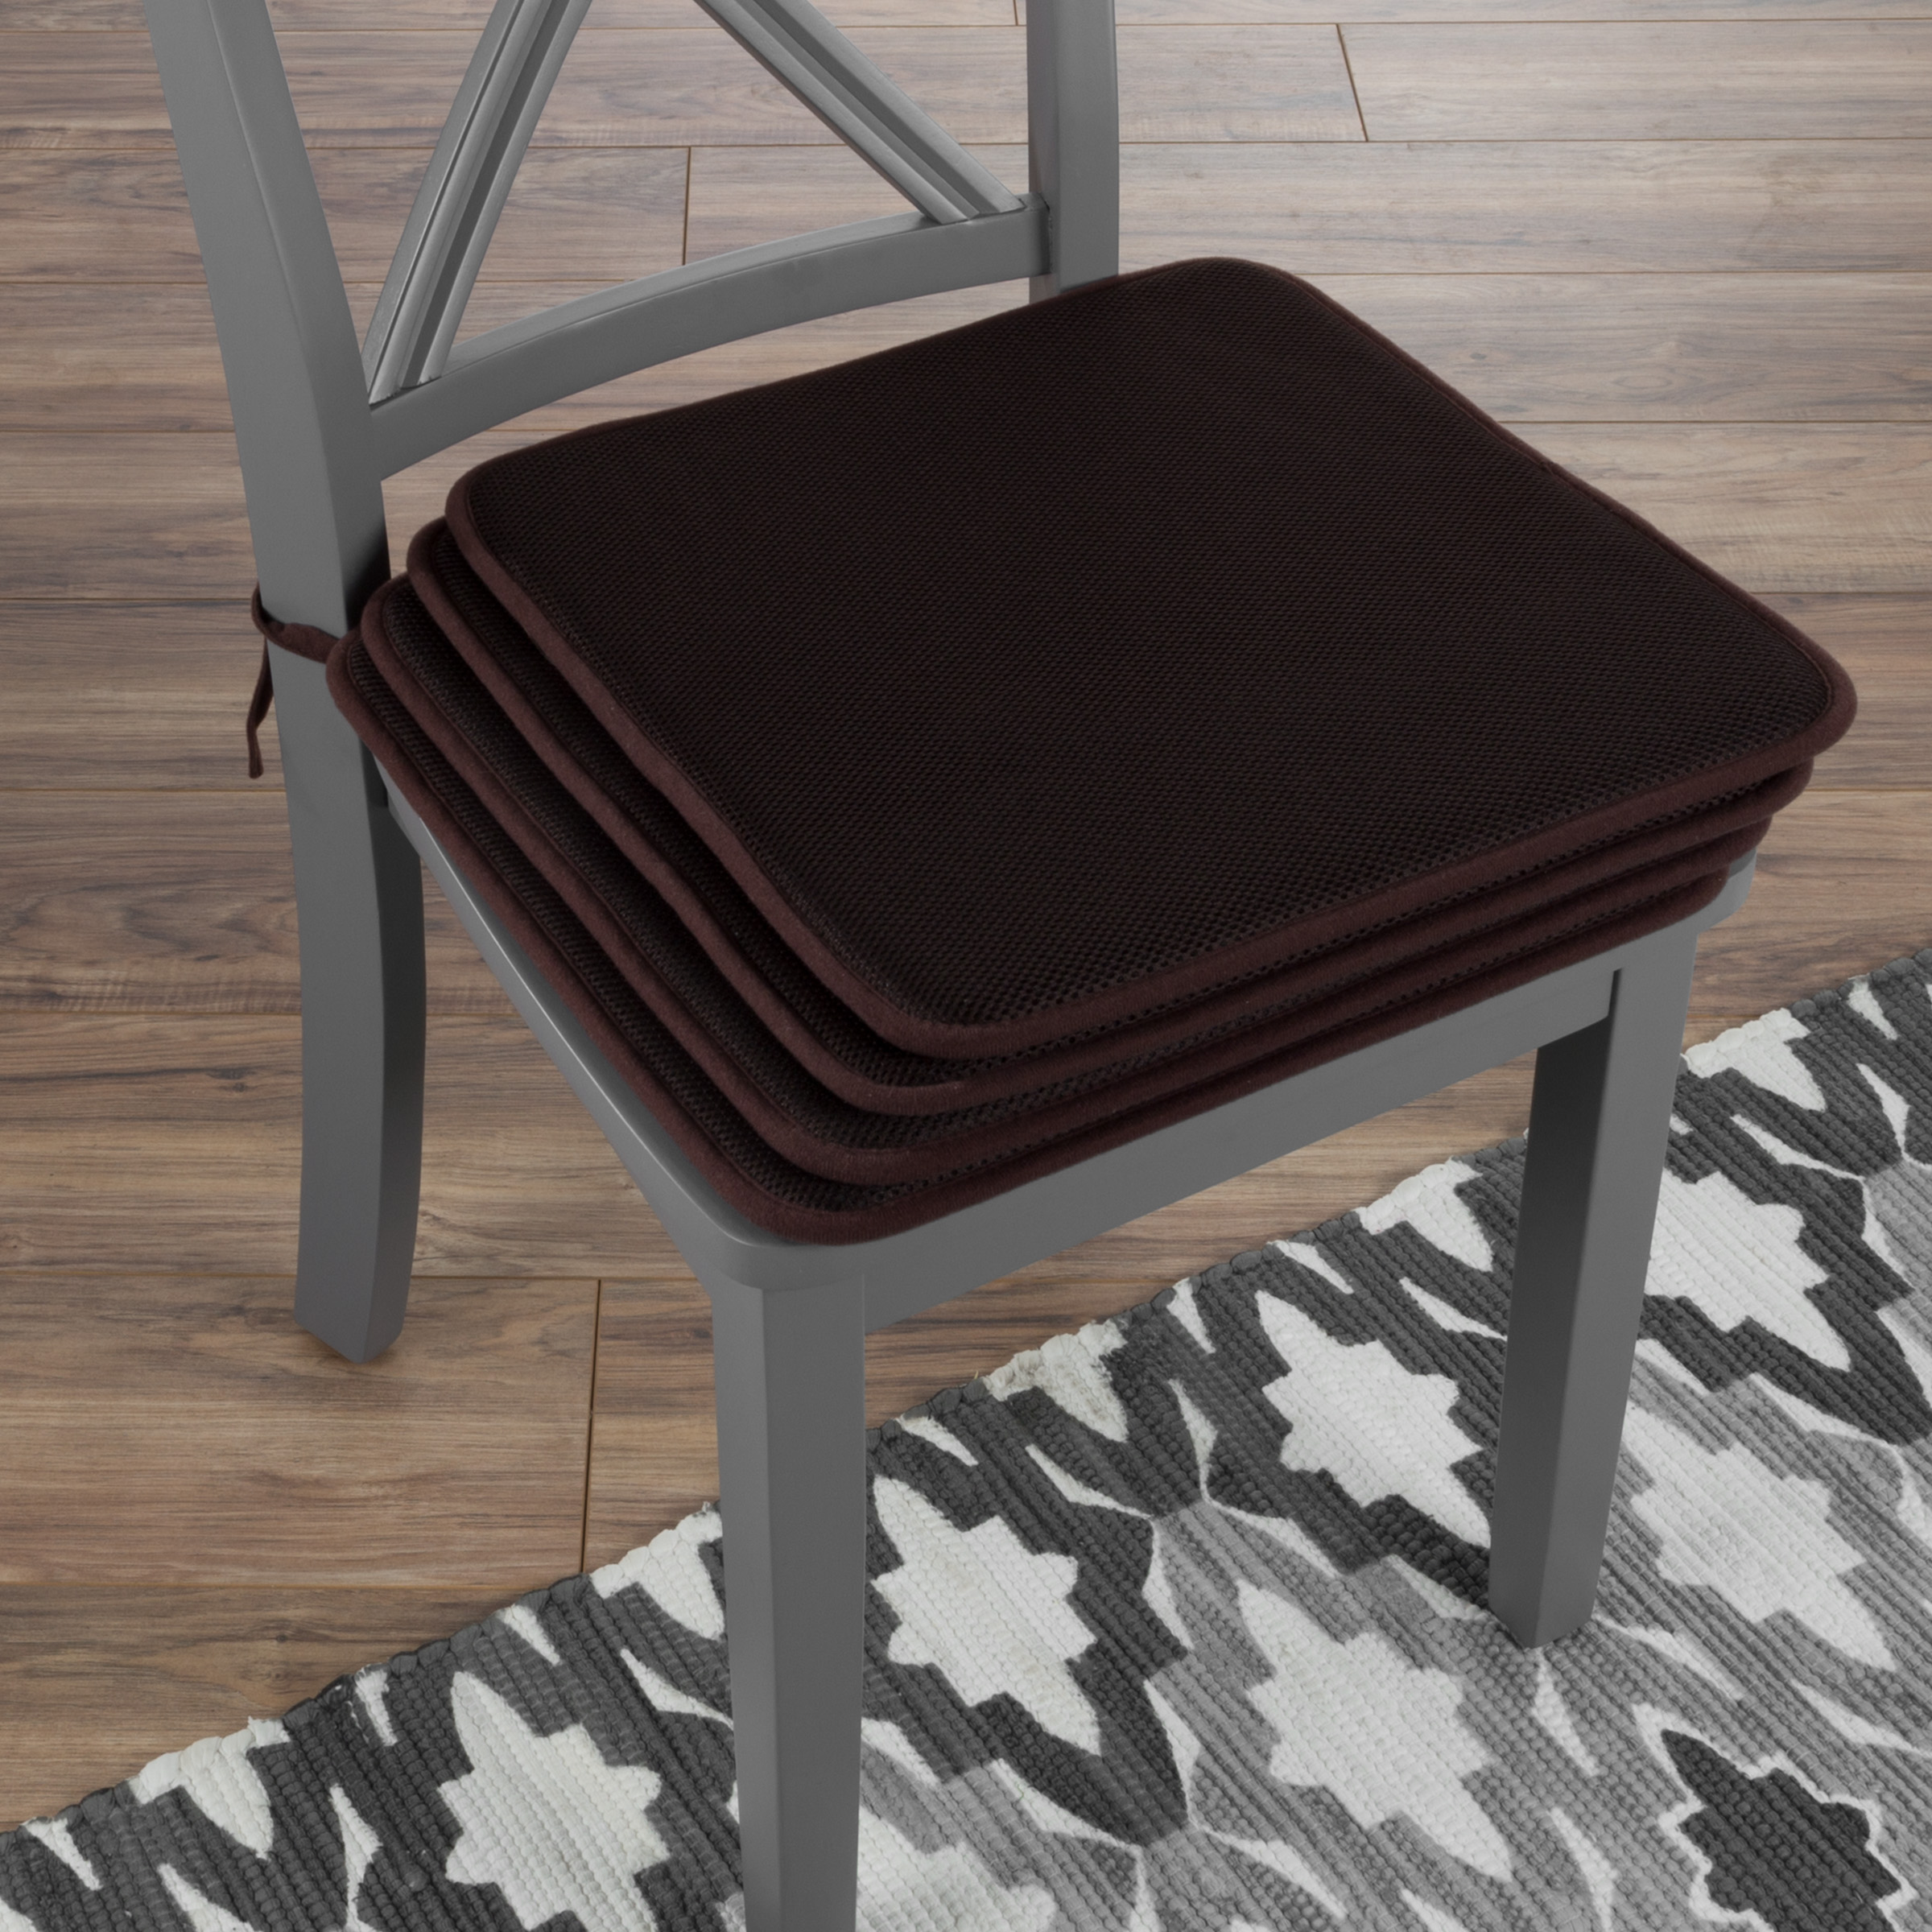 "Chair Cushions-Set of 4 Square Foam 16""x 16"" Chair Pads with Ties for Kitchen, Dining Room, Patio, Tailgating-Machine Washable by Lavish Home (Brown)"